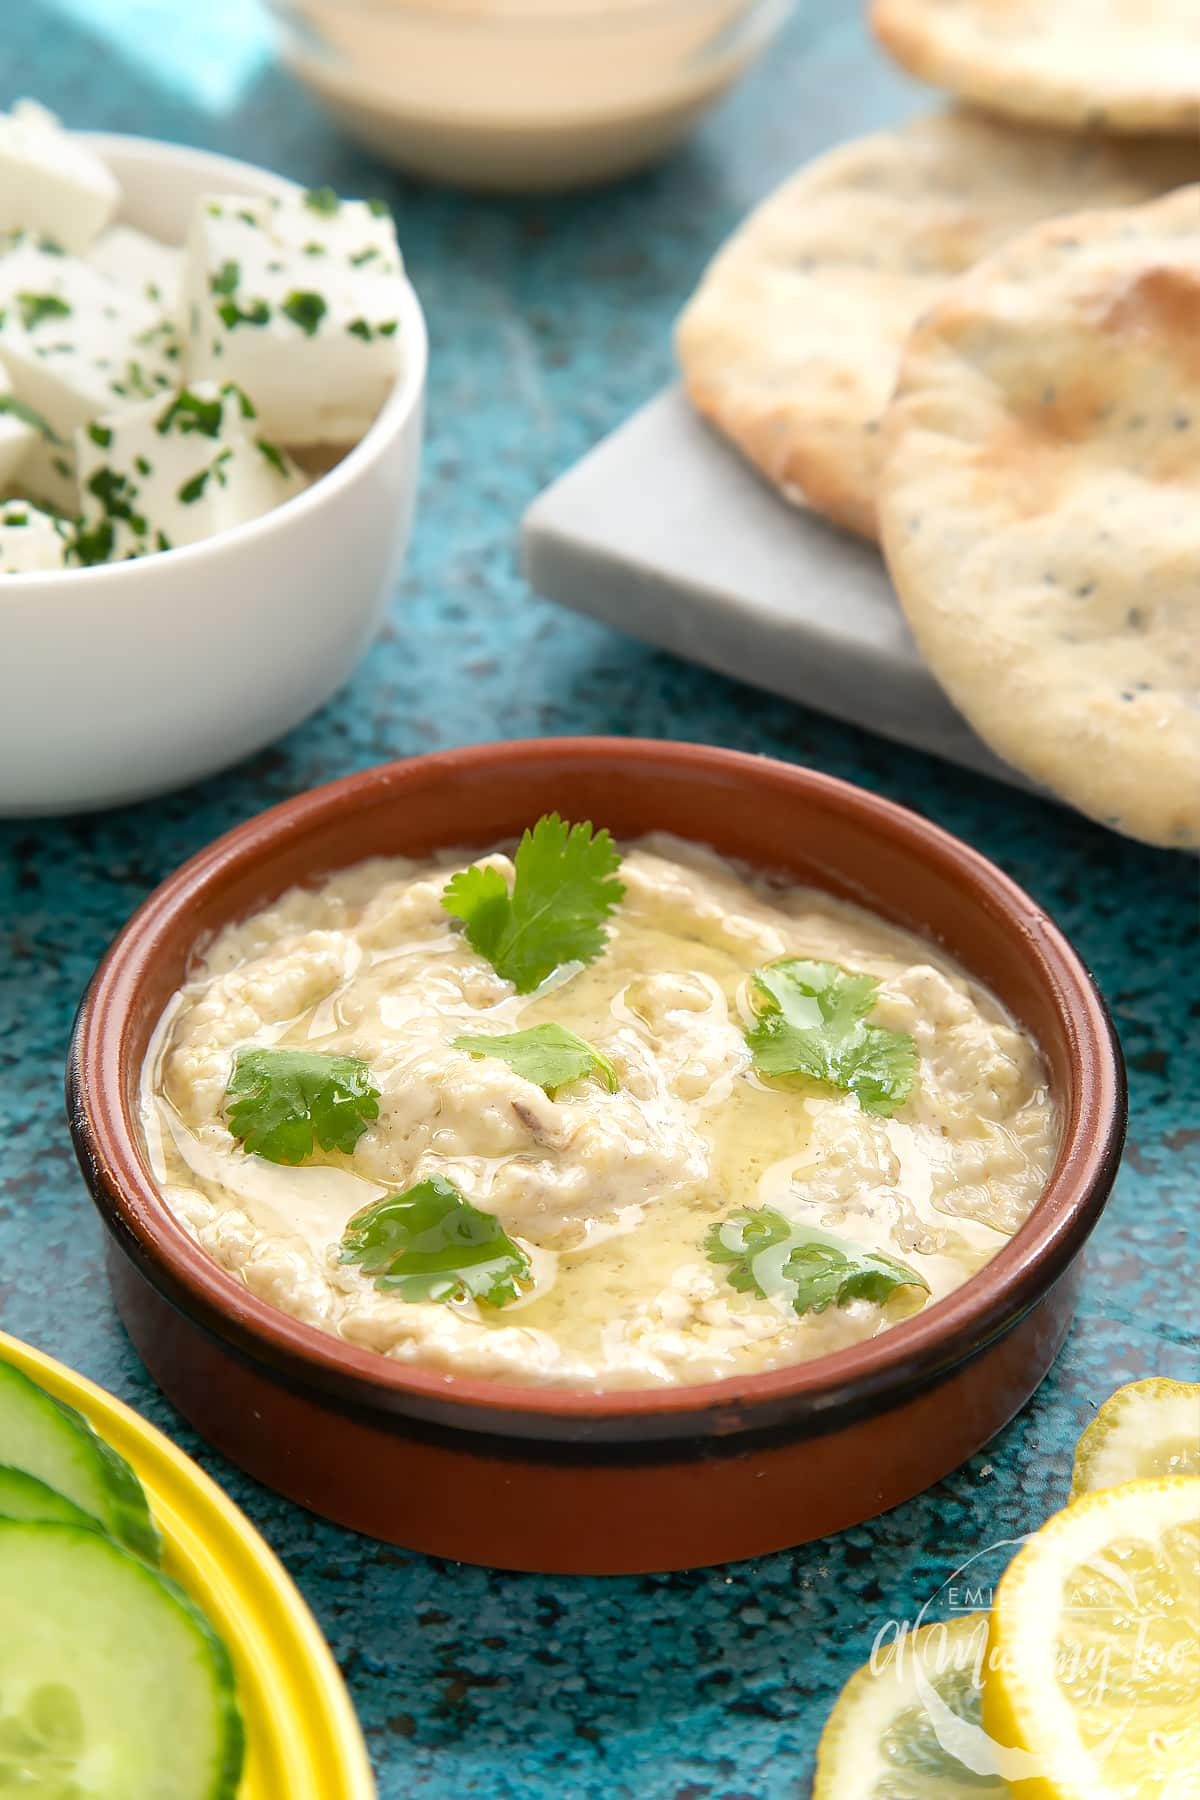 Baba ganoush in a shallow terracotta dish. Feta, cucumbers, lemon and flat bread surround the dish.